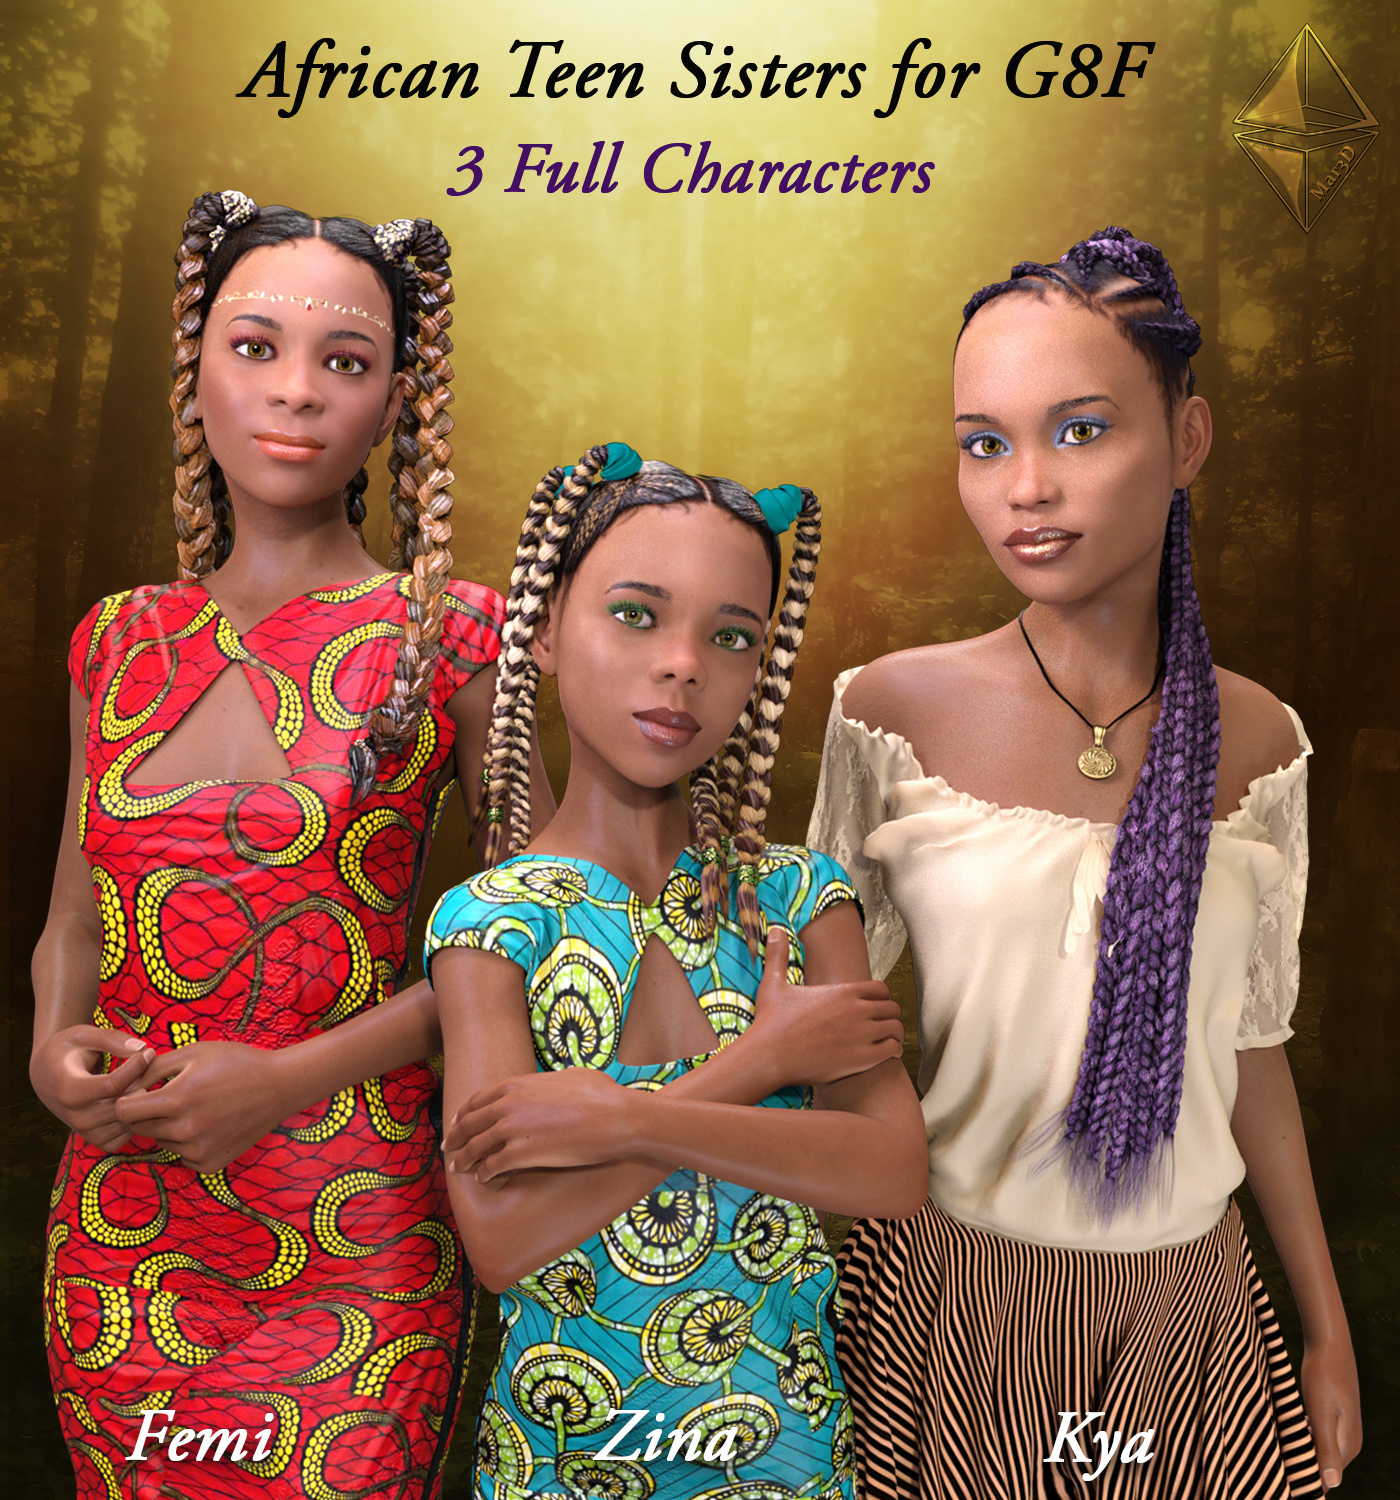 African Teen Sisters for G8F